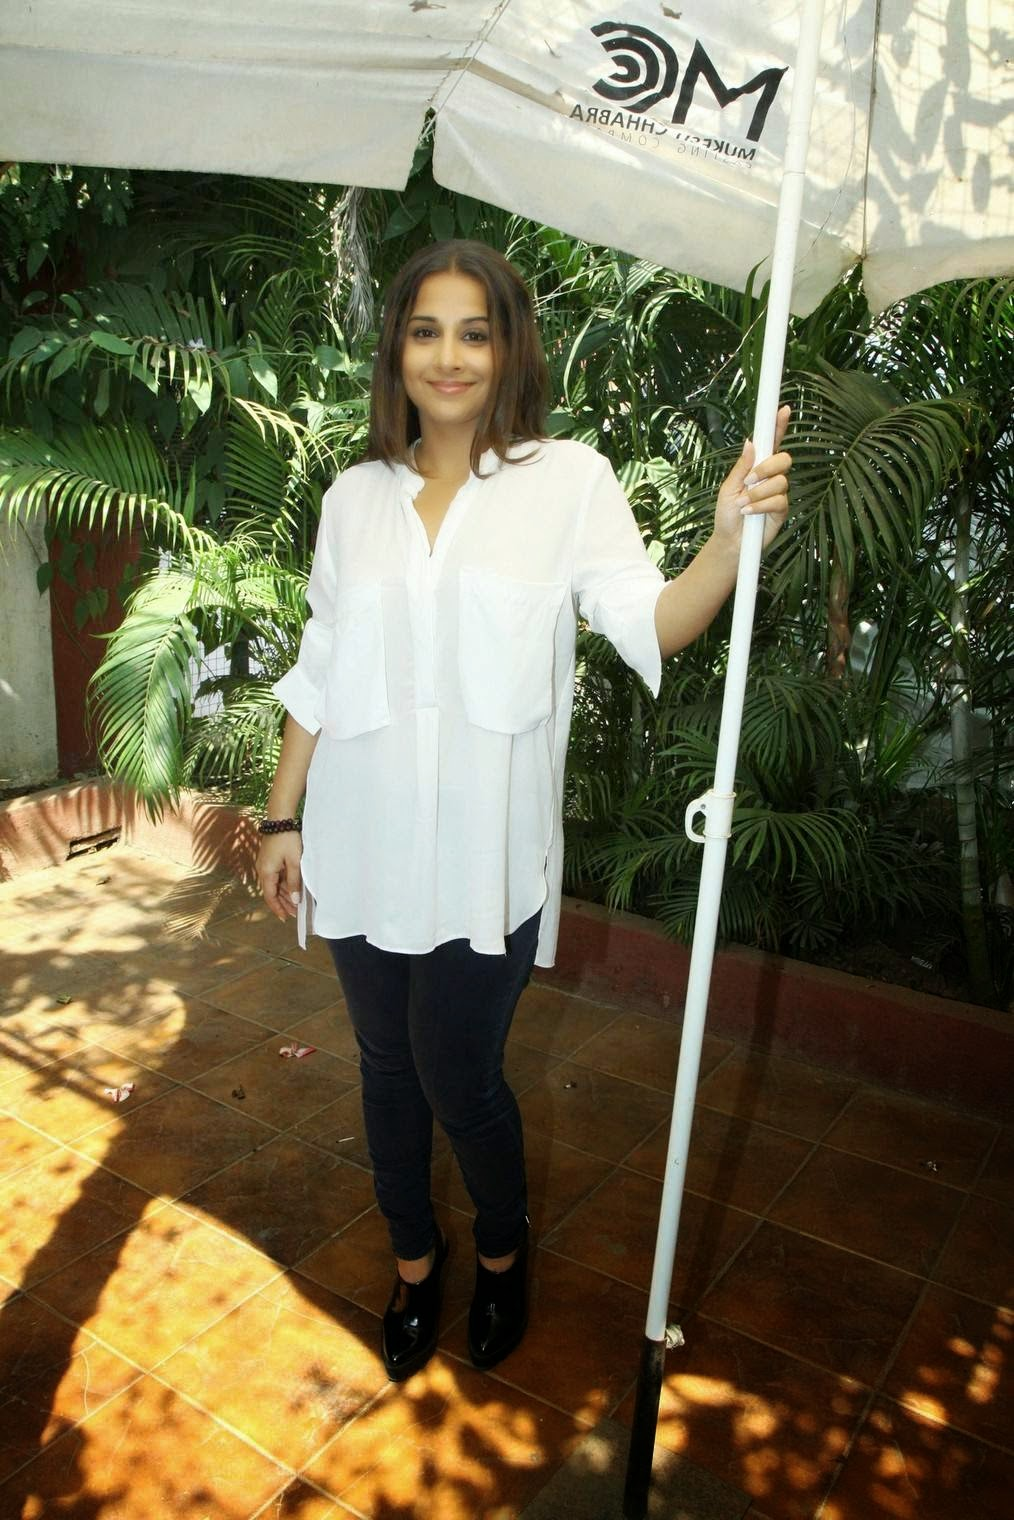 Vidya Balan Pictures in White and Black Jeans at Mukesh Chabbra's Acting Workshop